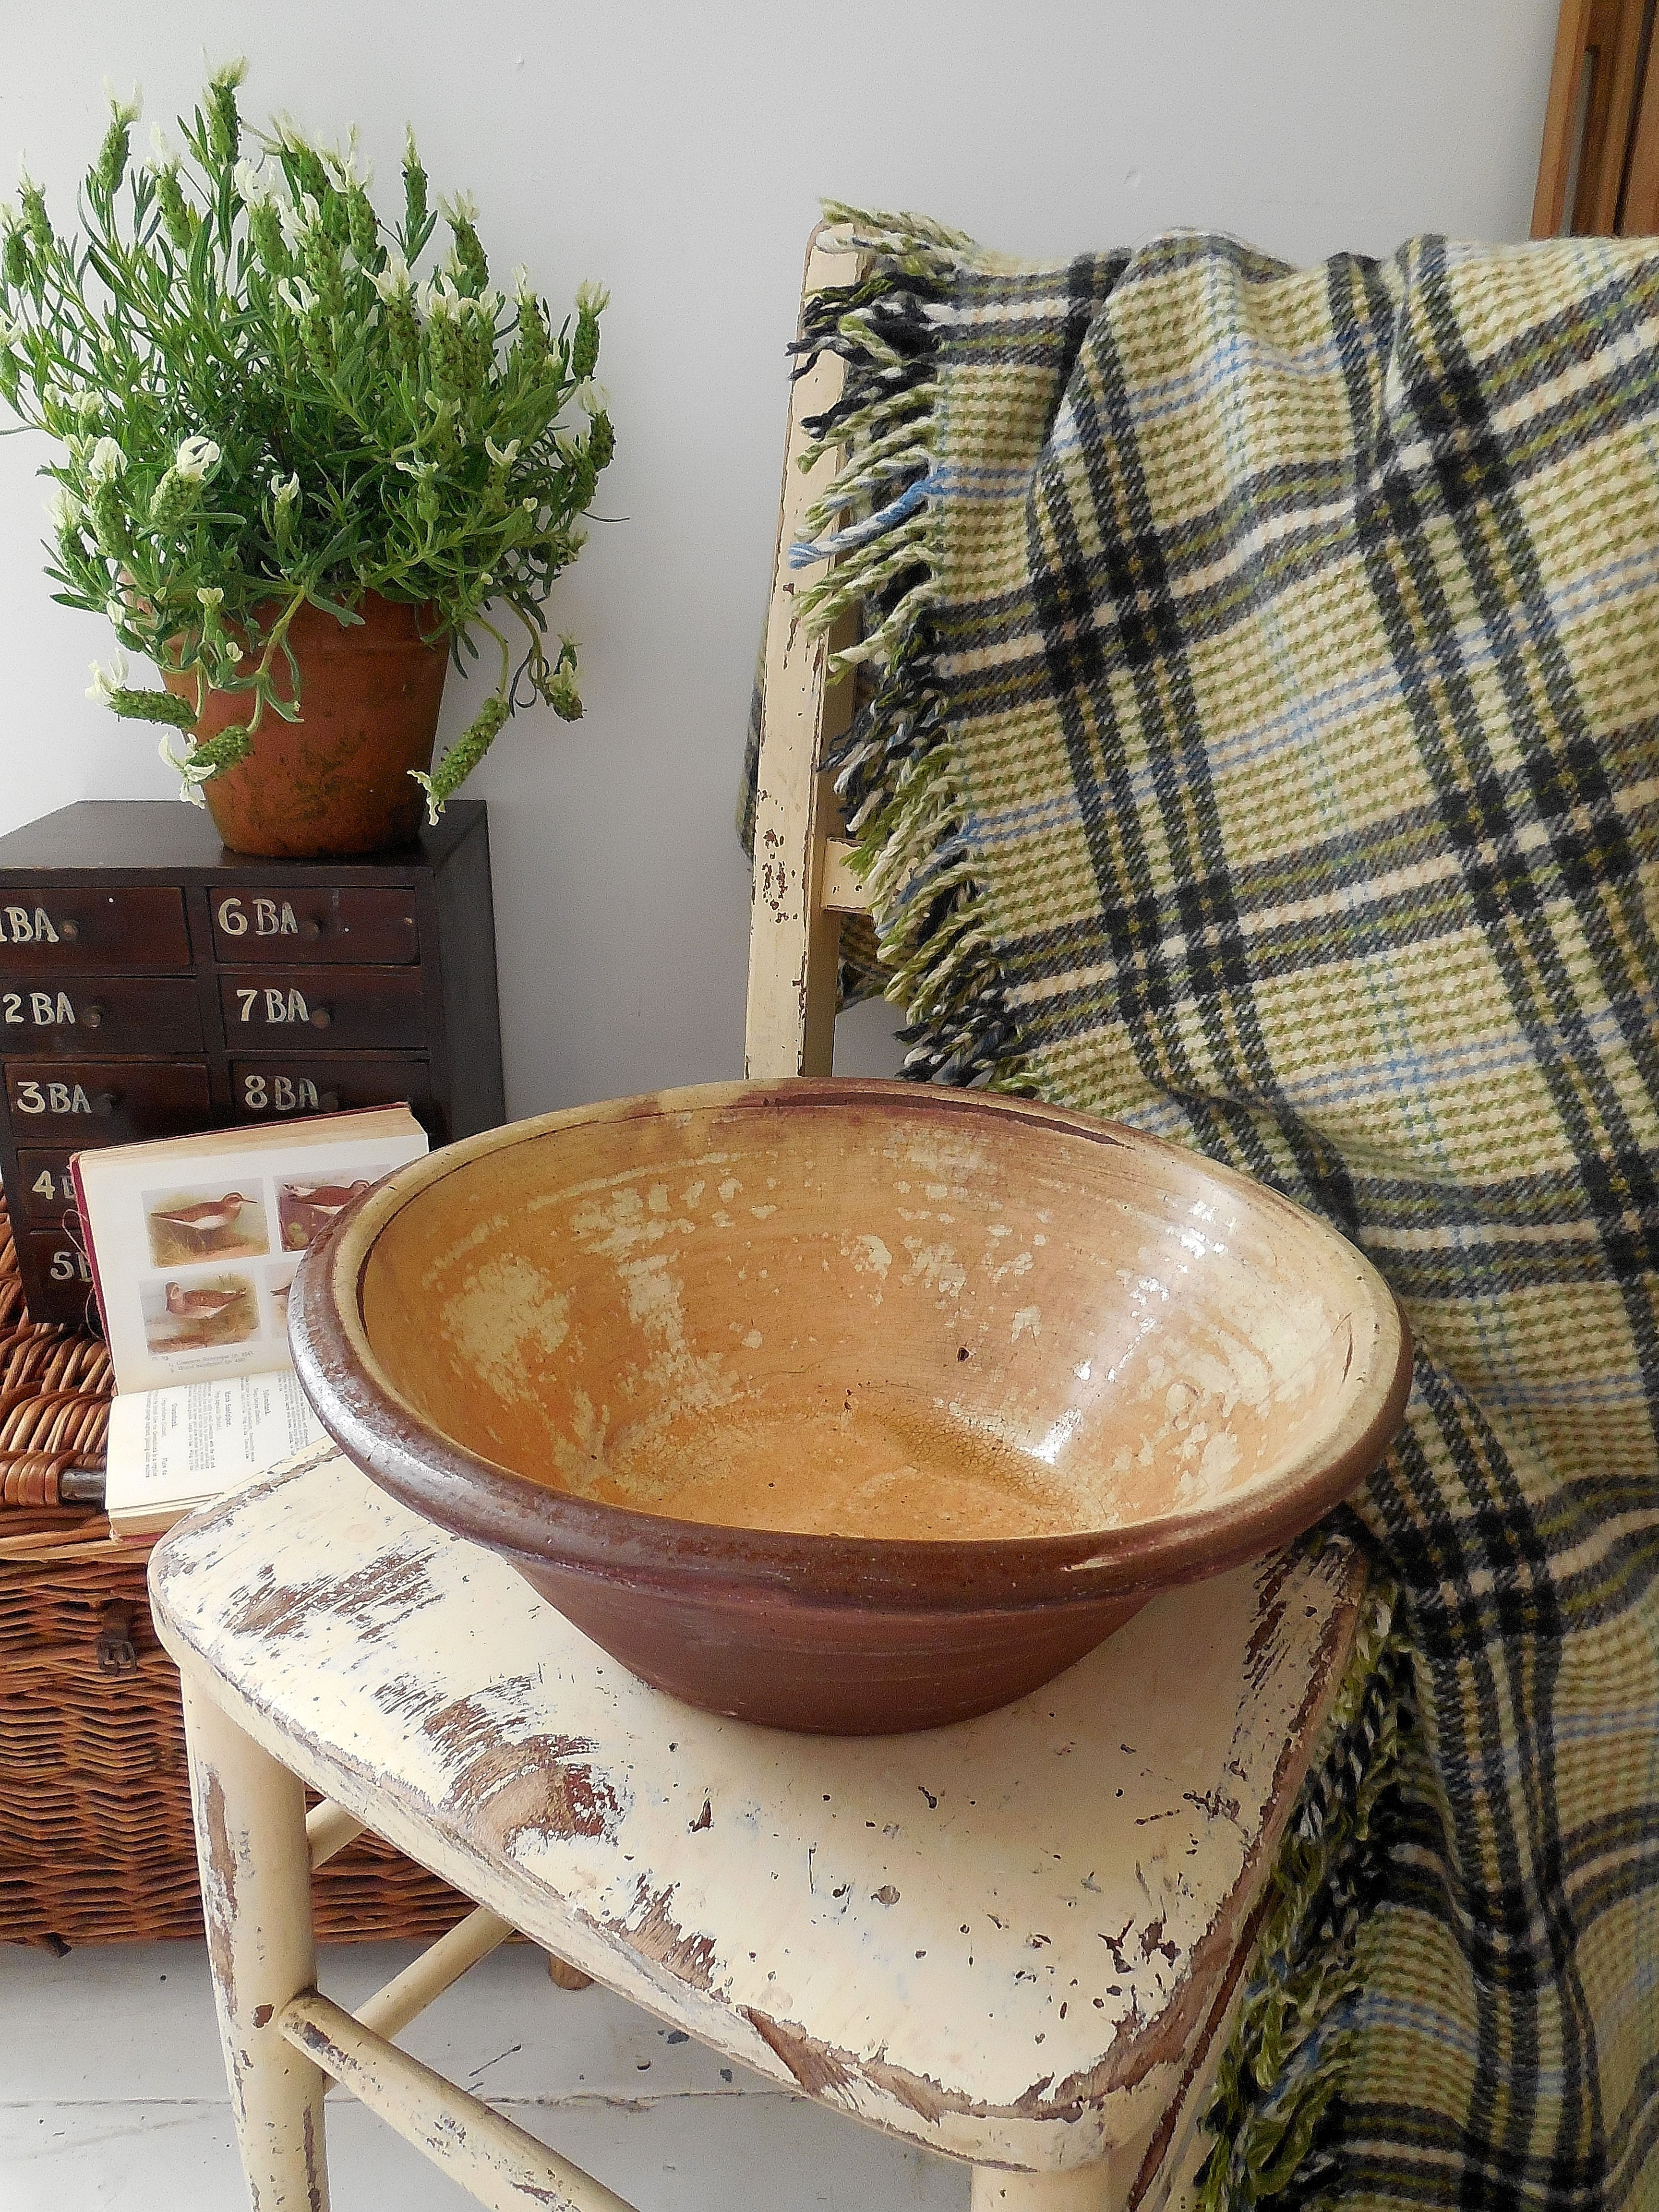 19th Century earthenware bowl from Lavender House Vintage vintage